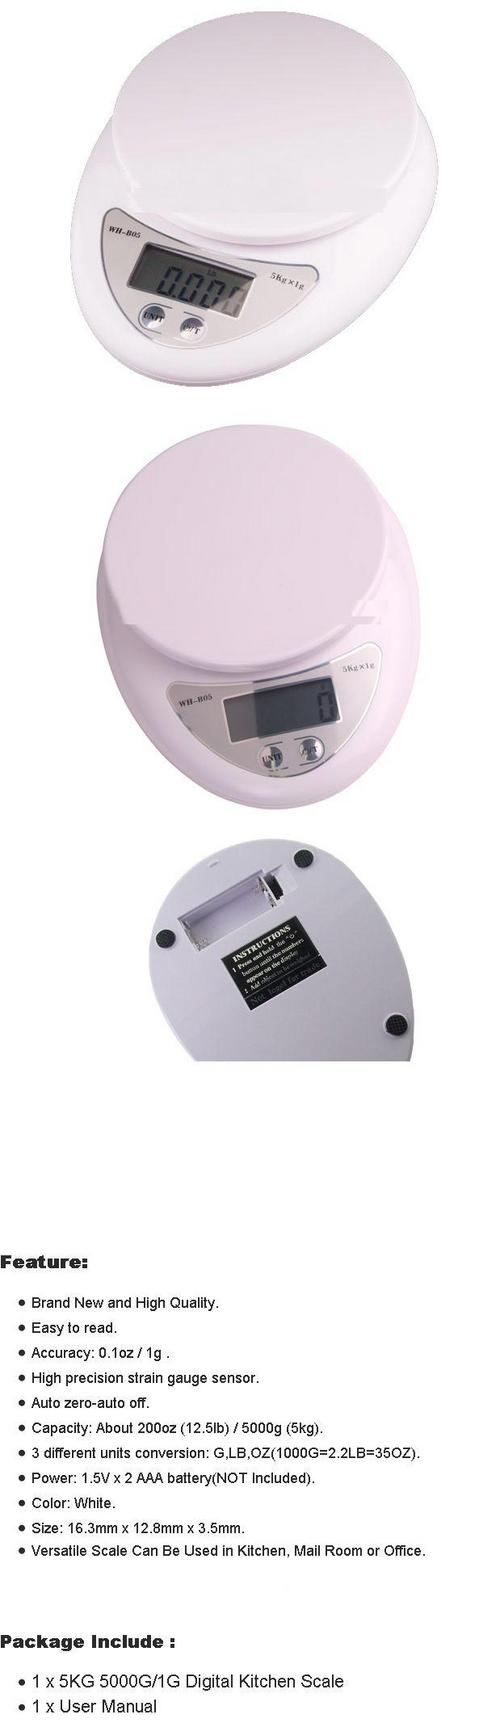 COMPACT DiGiTAL KiTCHEN FOOD DIET POSTAL WEIGH LESS LCD SCALE# Usave R1200 #